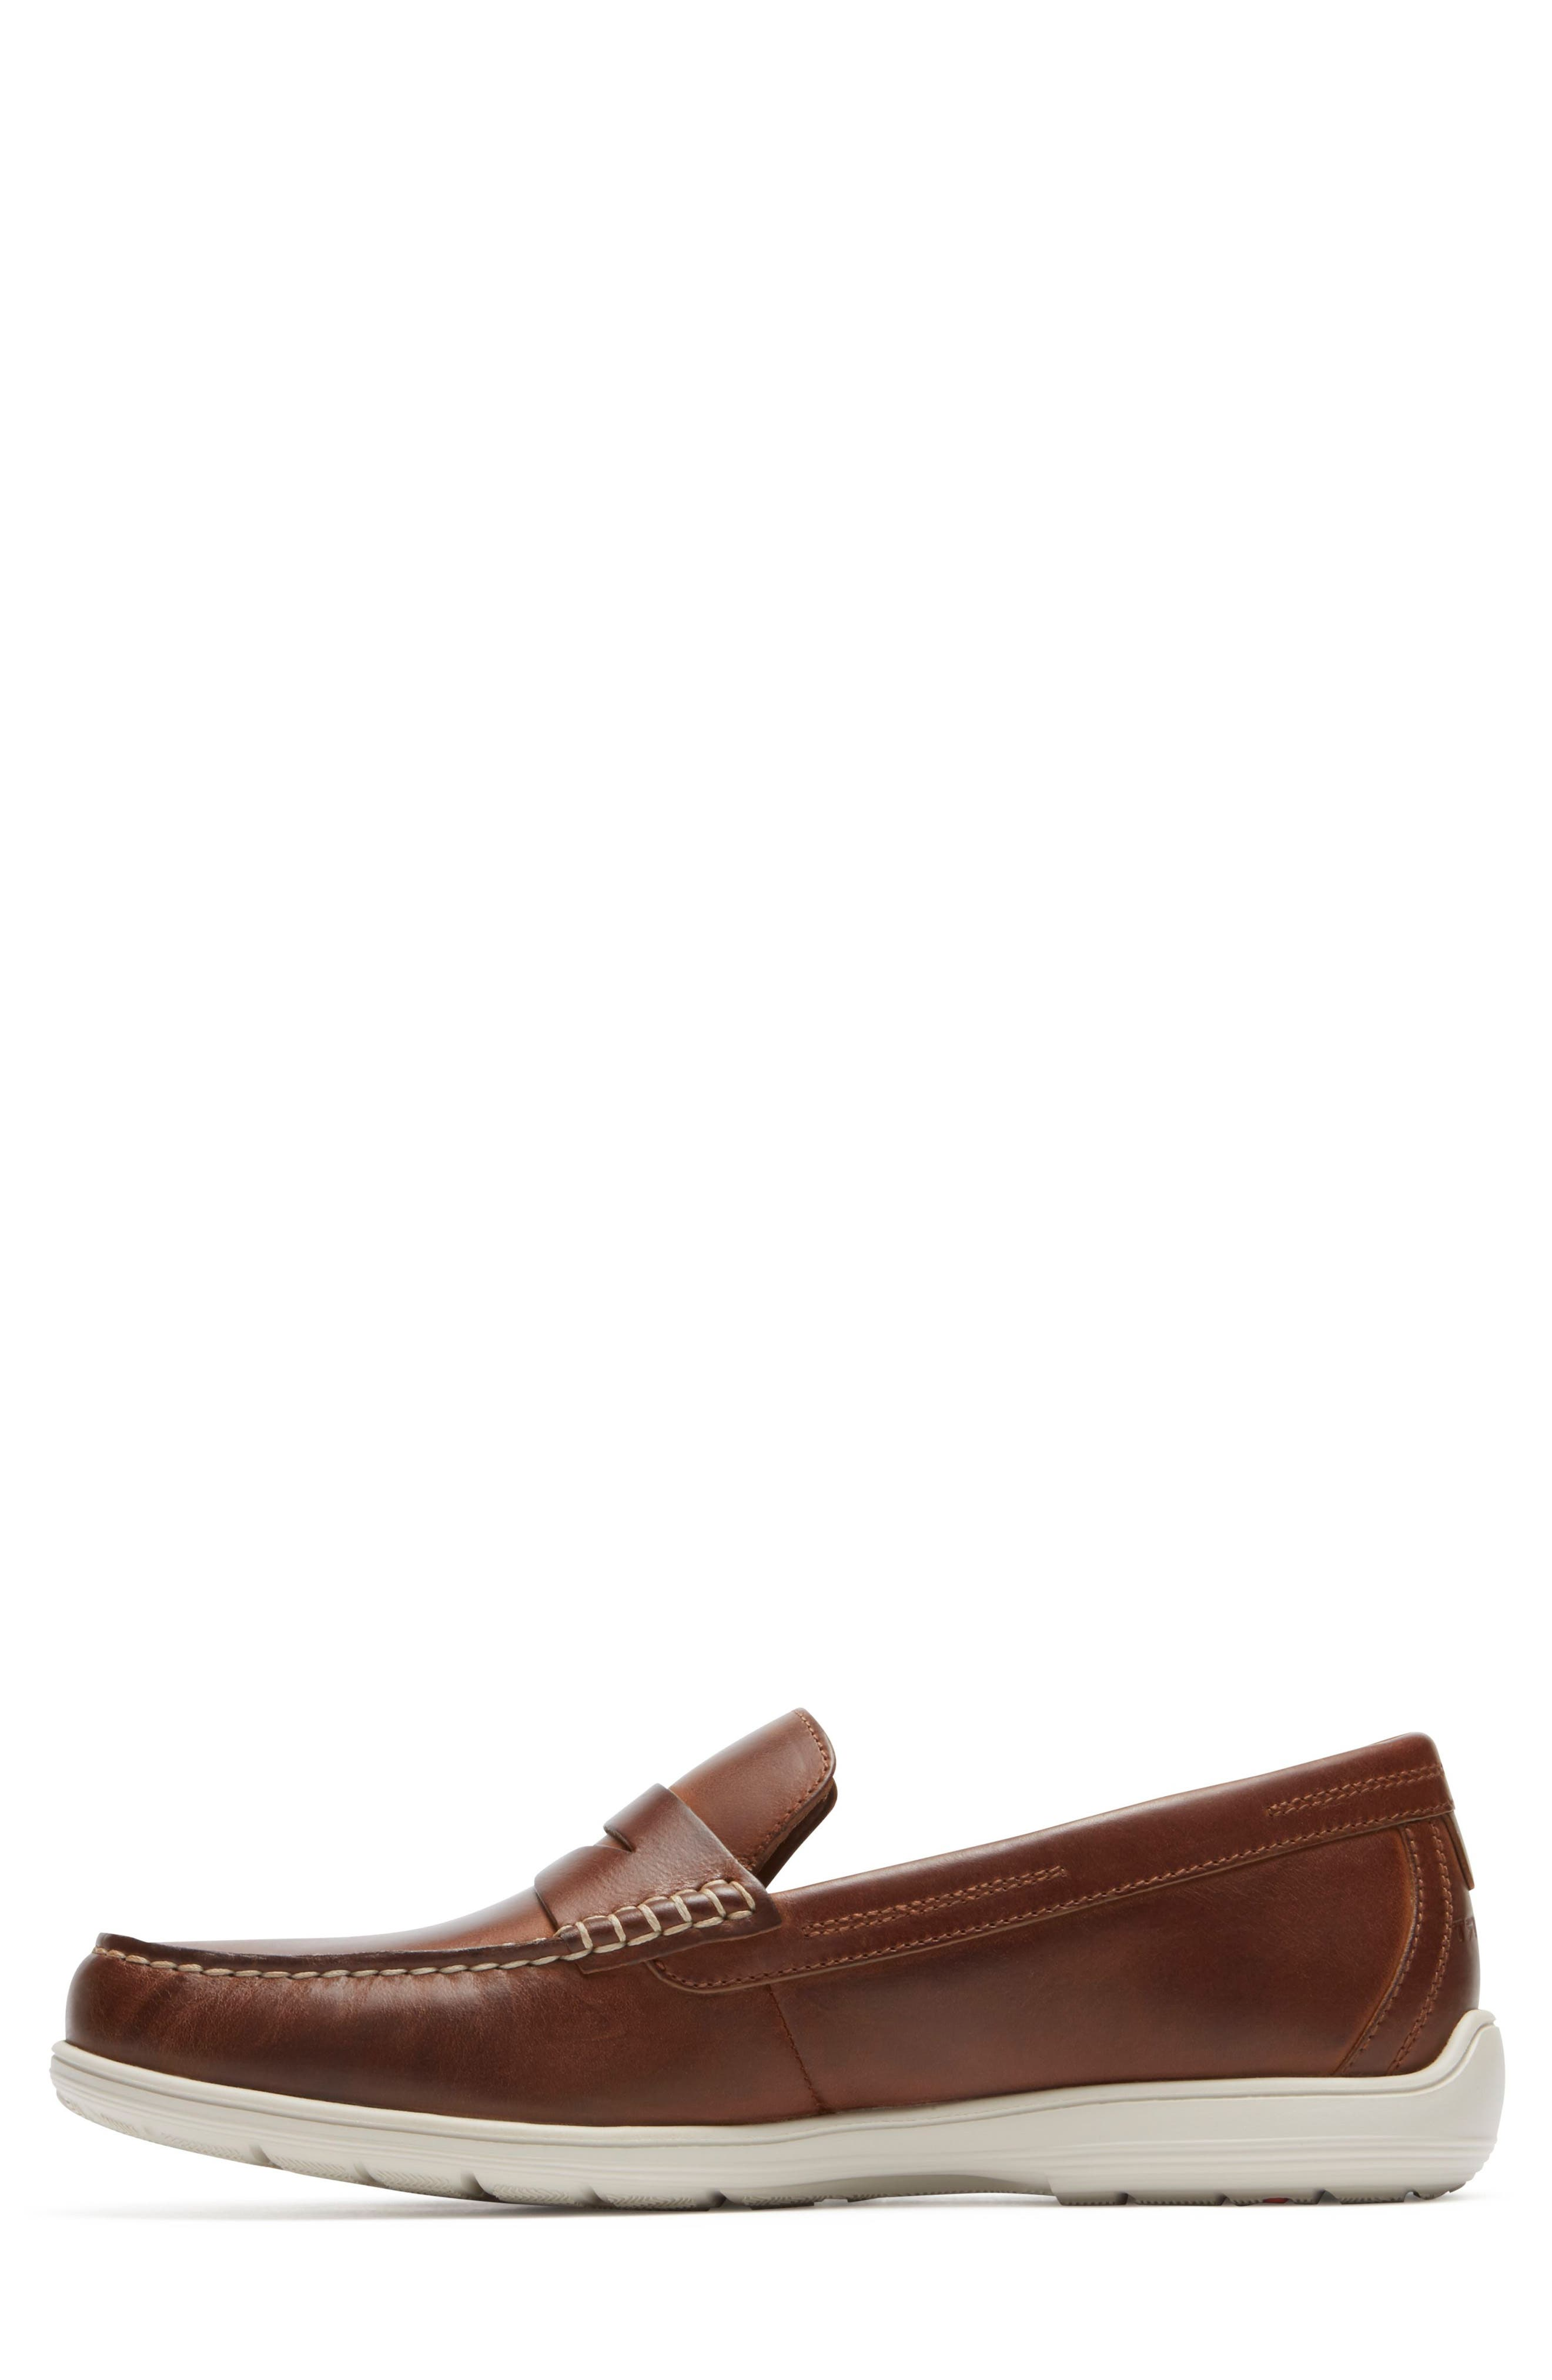 Total Motion Penny Loafer,                             Alternate thumbnail 4, color,